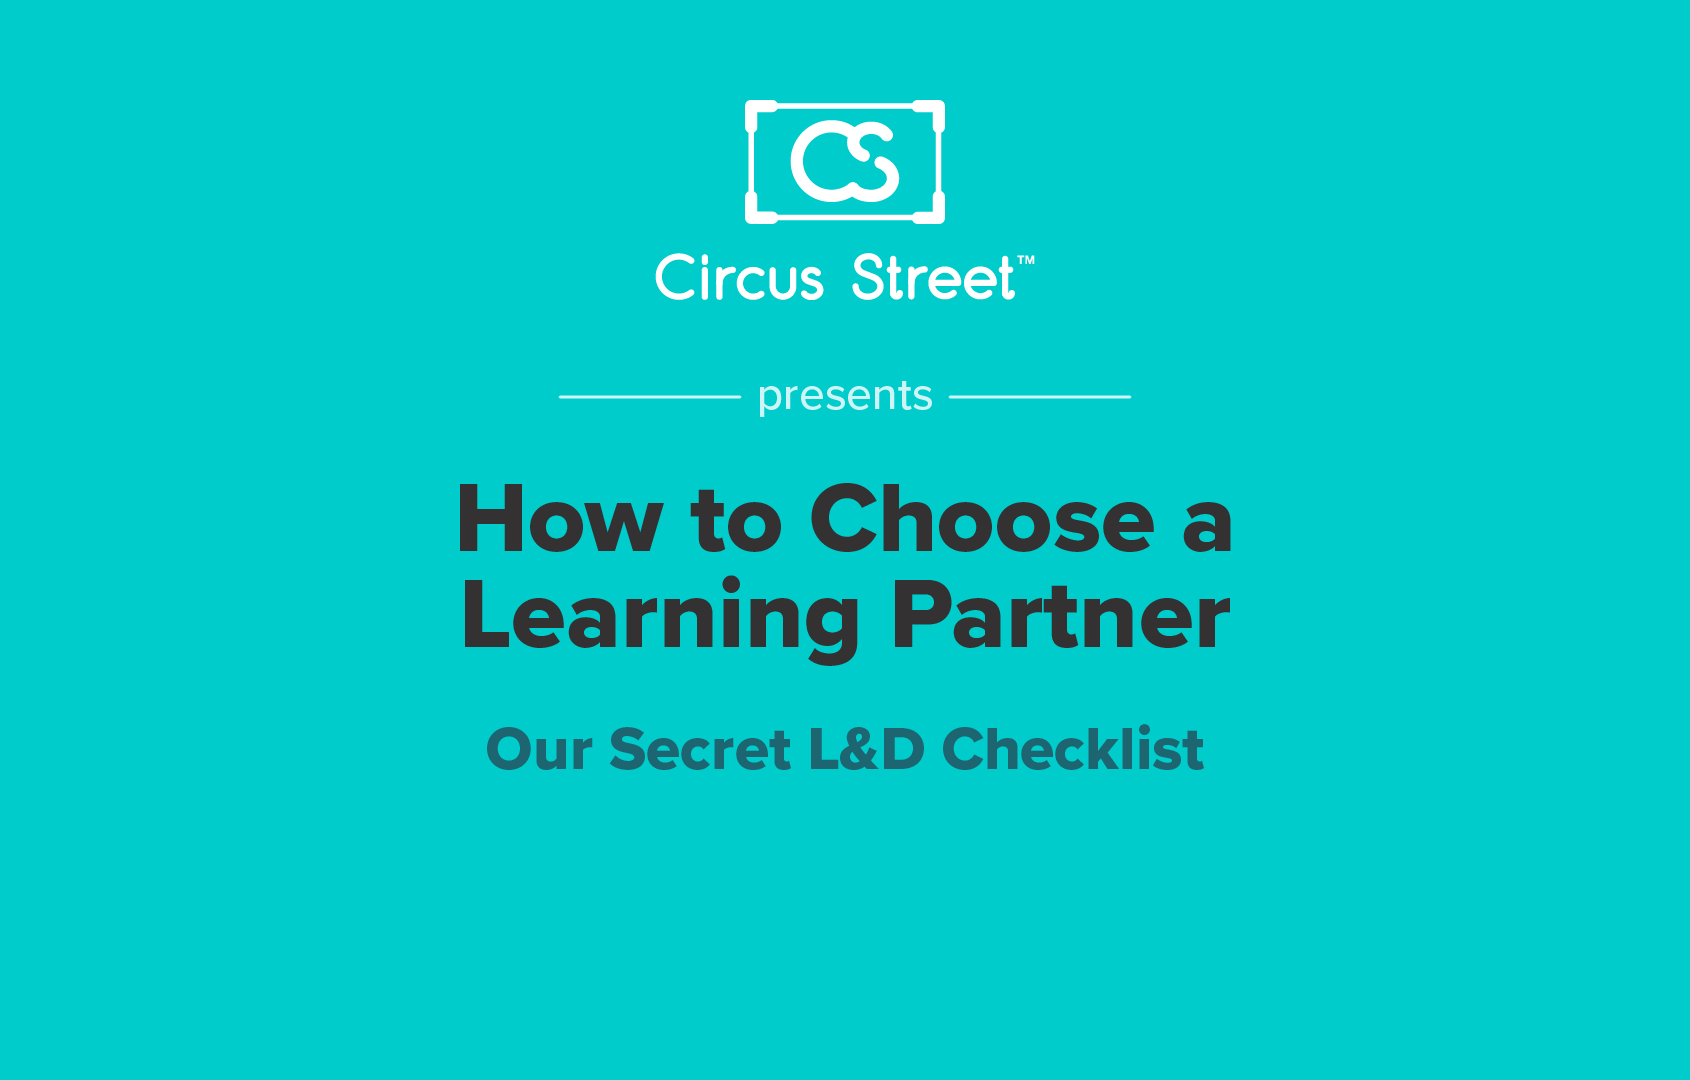 How to Choose a Learning Partner